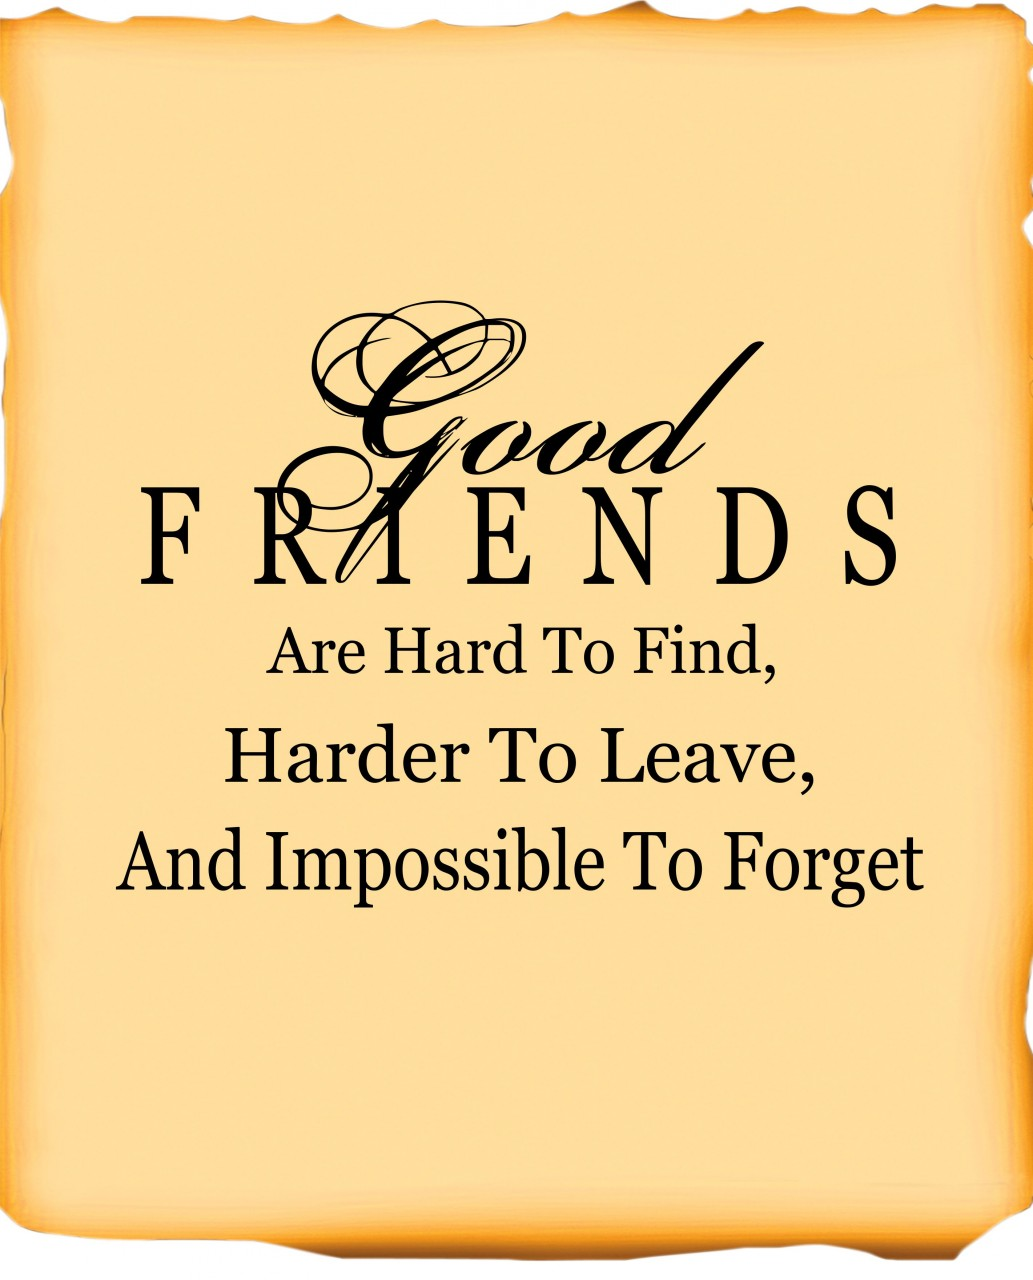 A Good Friend Quote: Being A Good Friend Quotes. QuotesGram